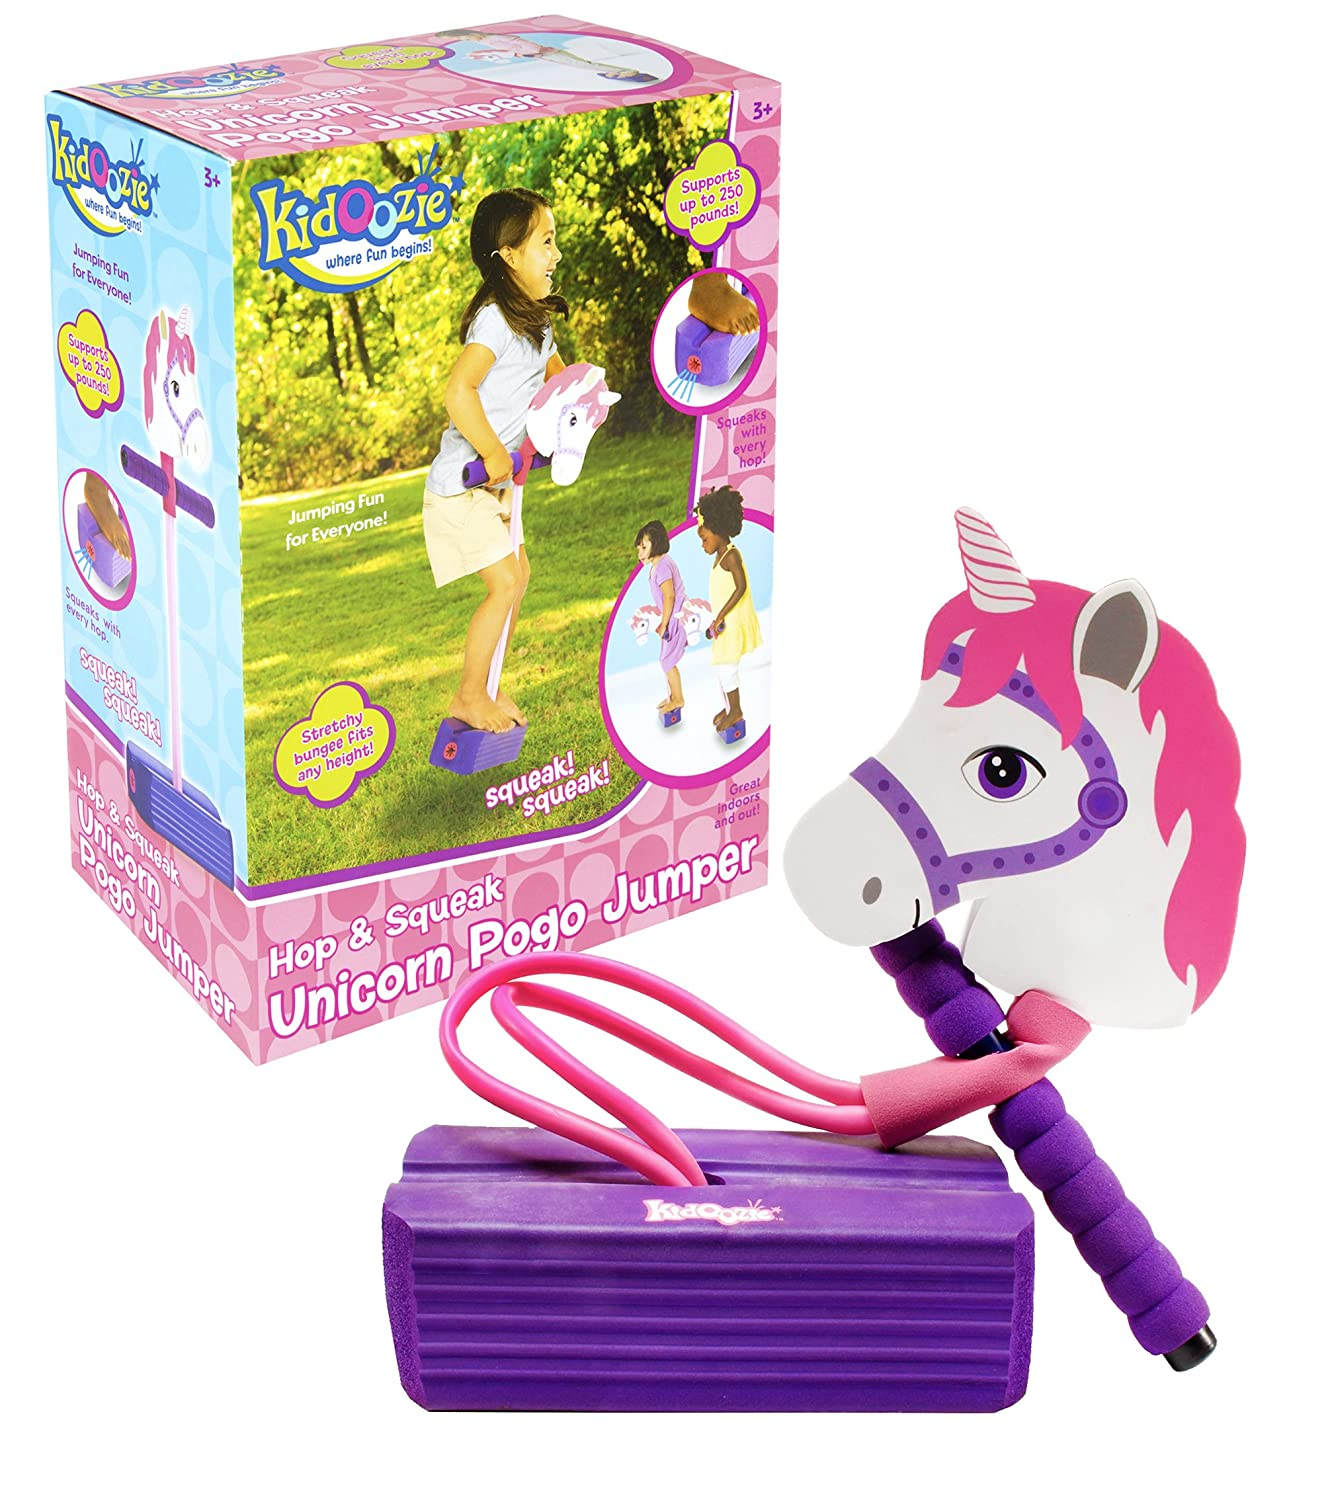 23 Best Unicorn Toys and Gifts for Girls Reviews of 2021 35